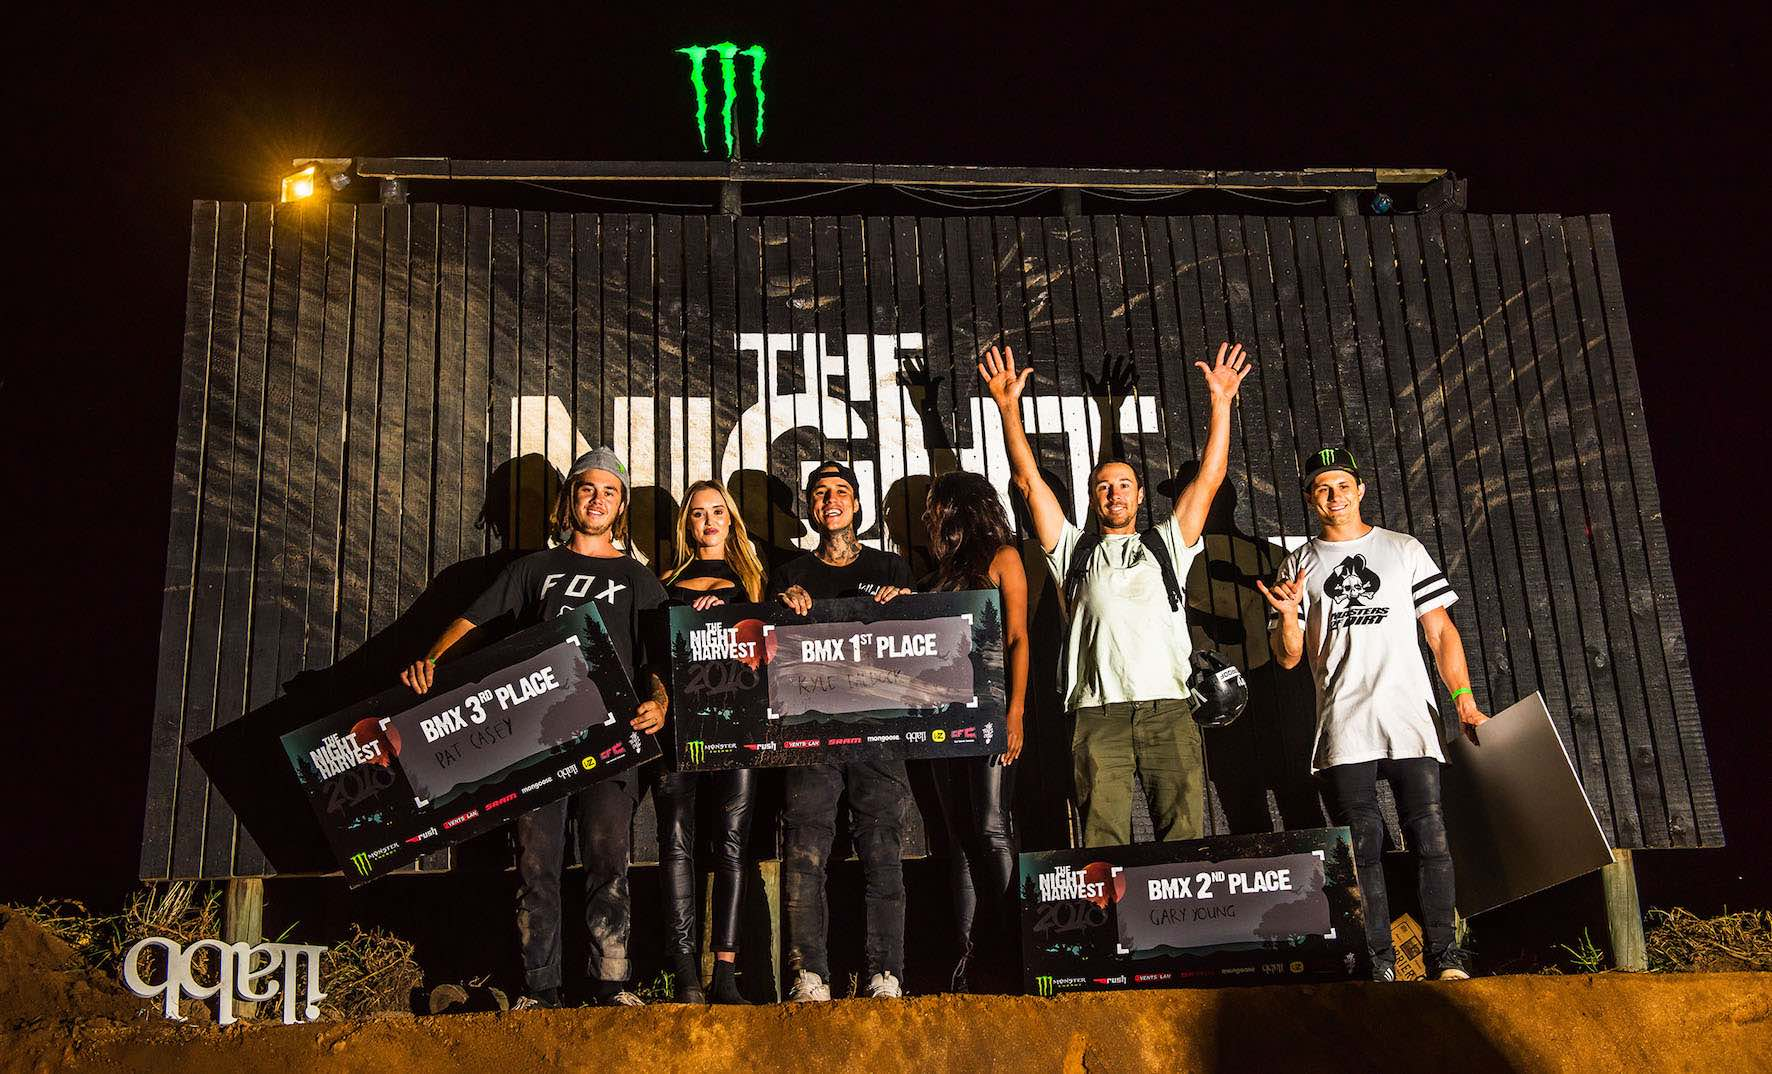 The Night Harvest 2018 BMX podium